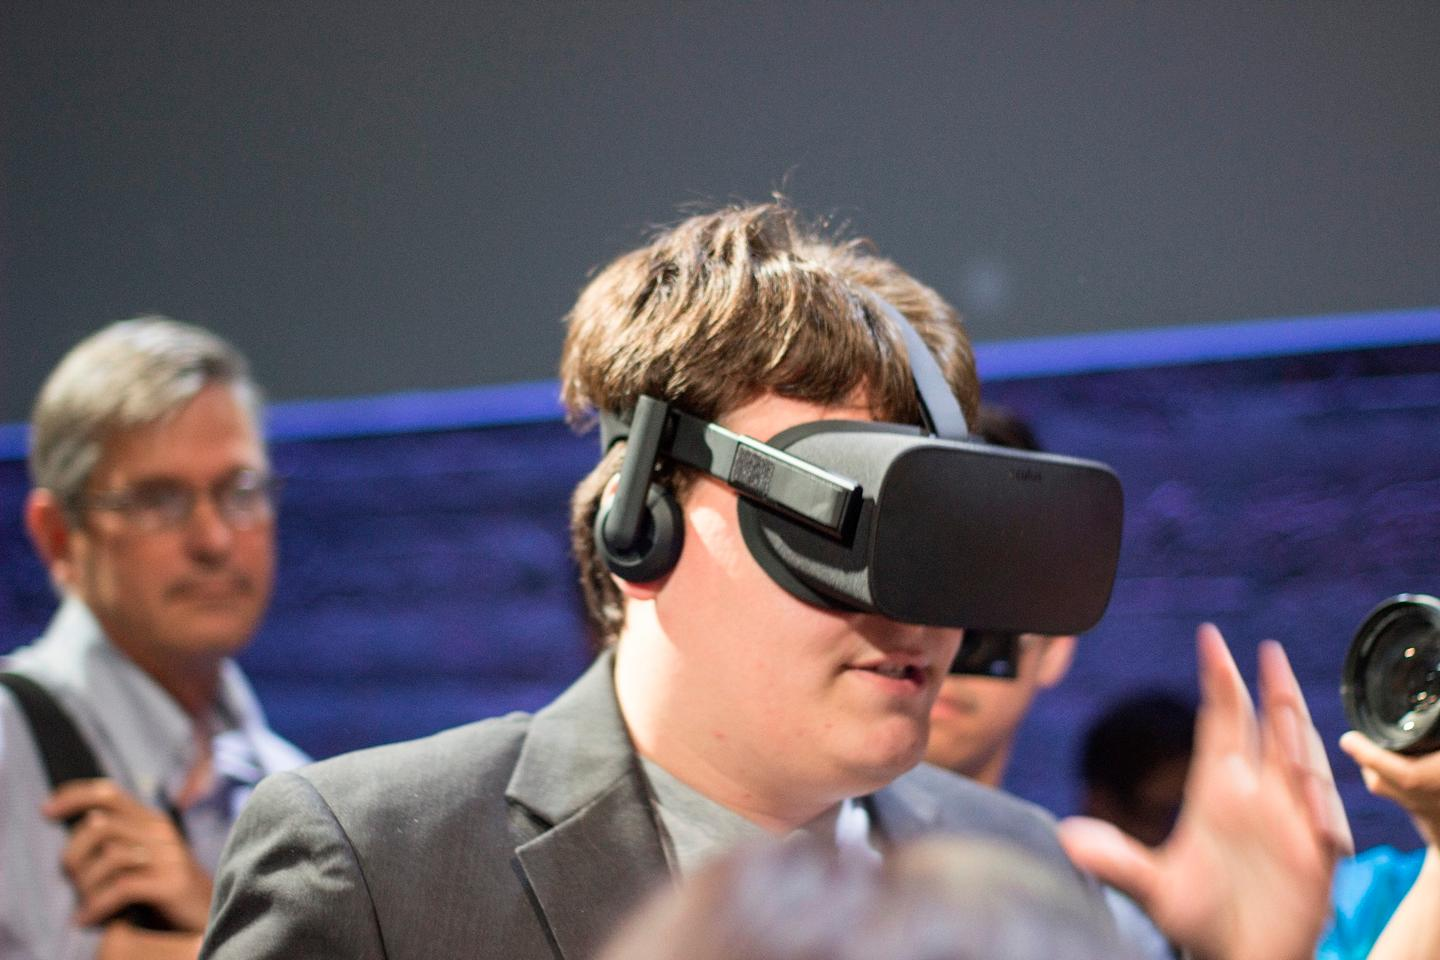 Oculus' Palmer Luckey stepping into the (consumer) Rift